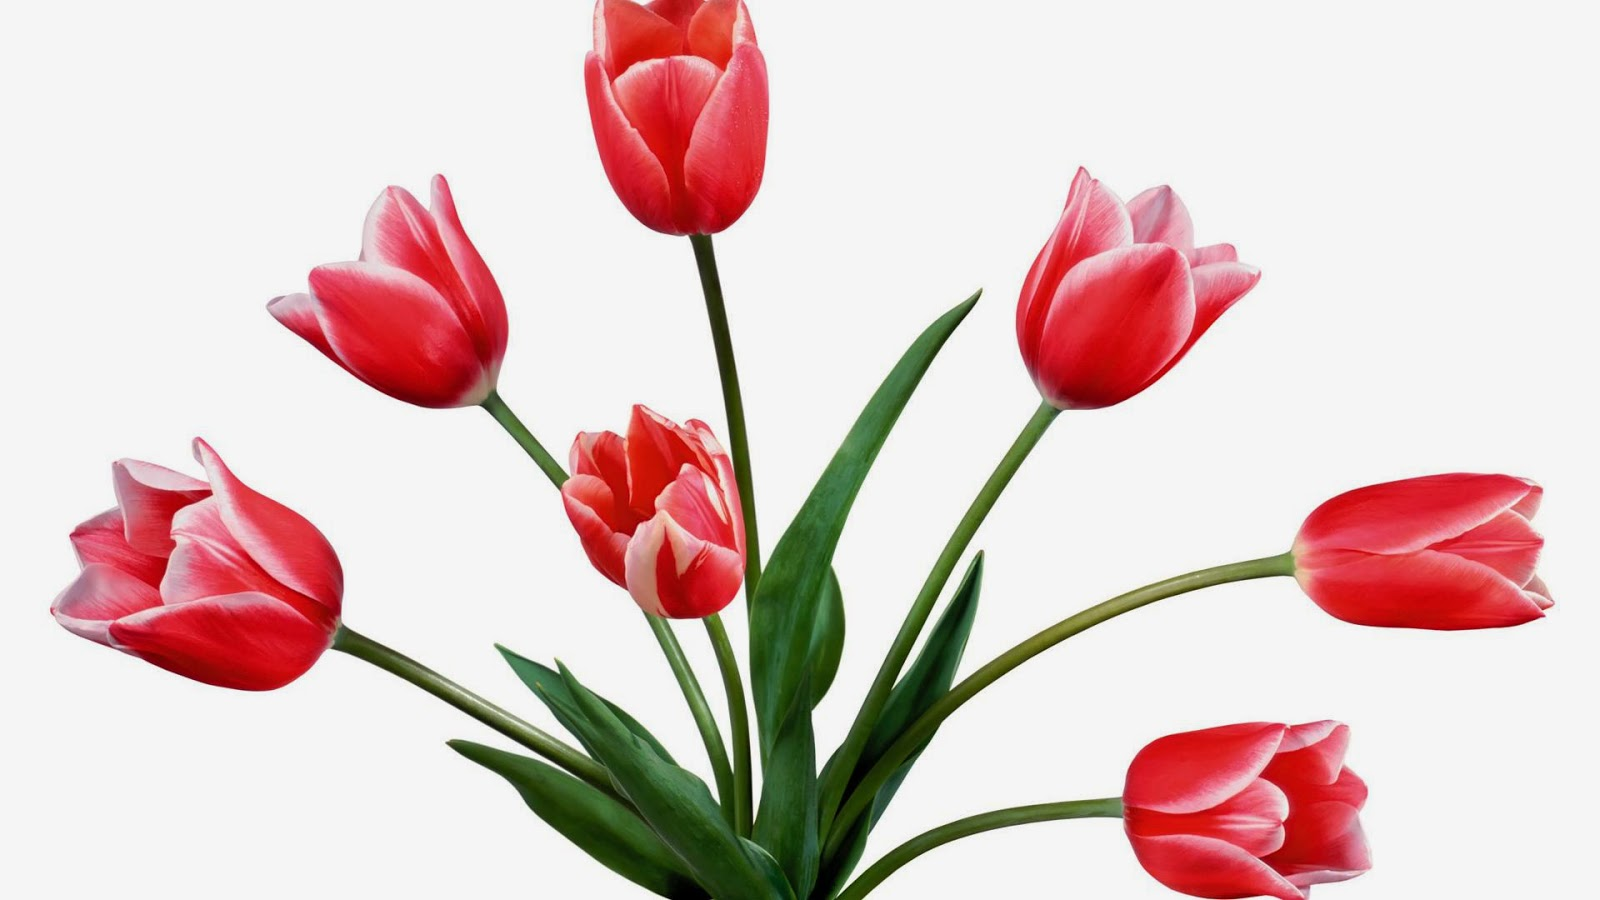 Tulip Flower Wallpaper Photo